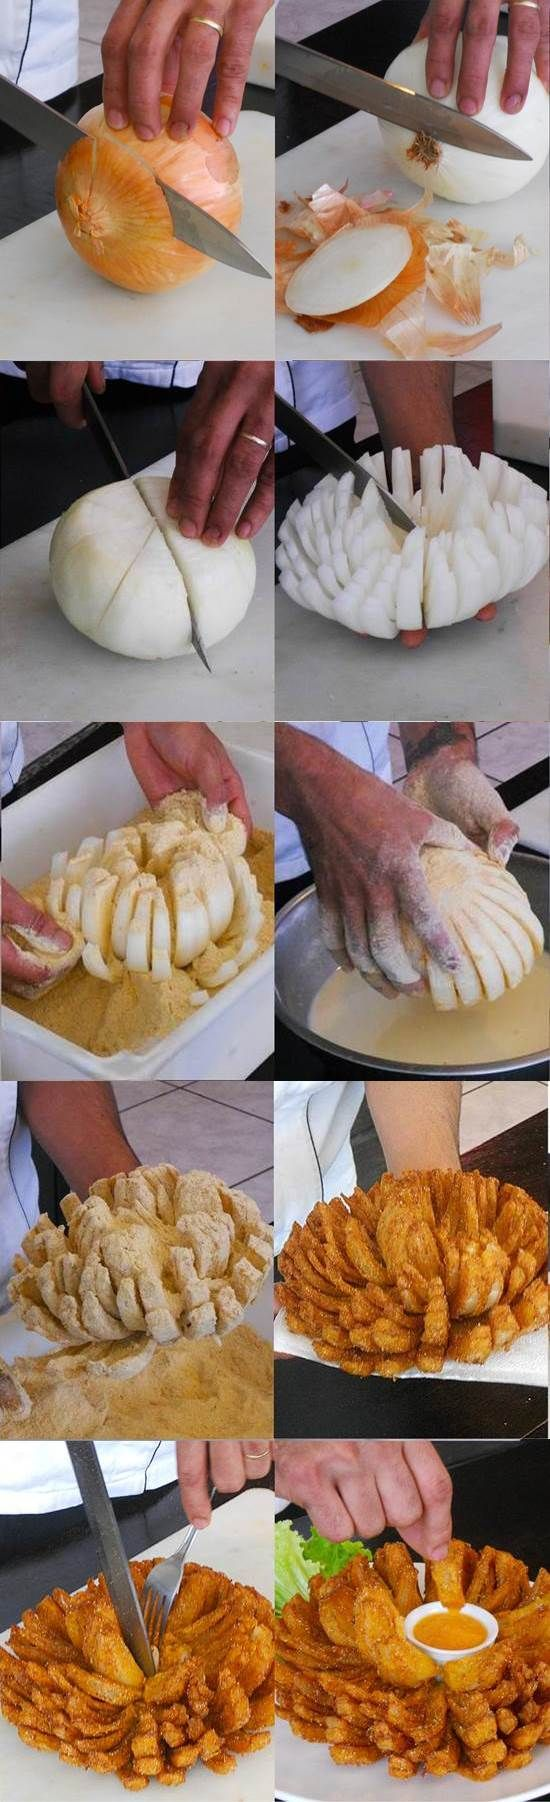 Blooming Onion Recipe @Jacklyn Chandler Chandler Keller  @Kara Morehouse Morehouse Fortenberry